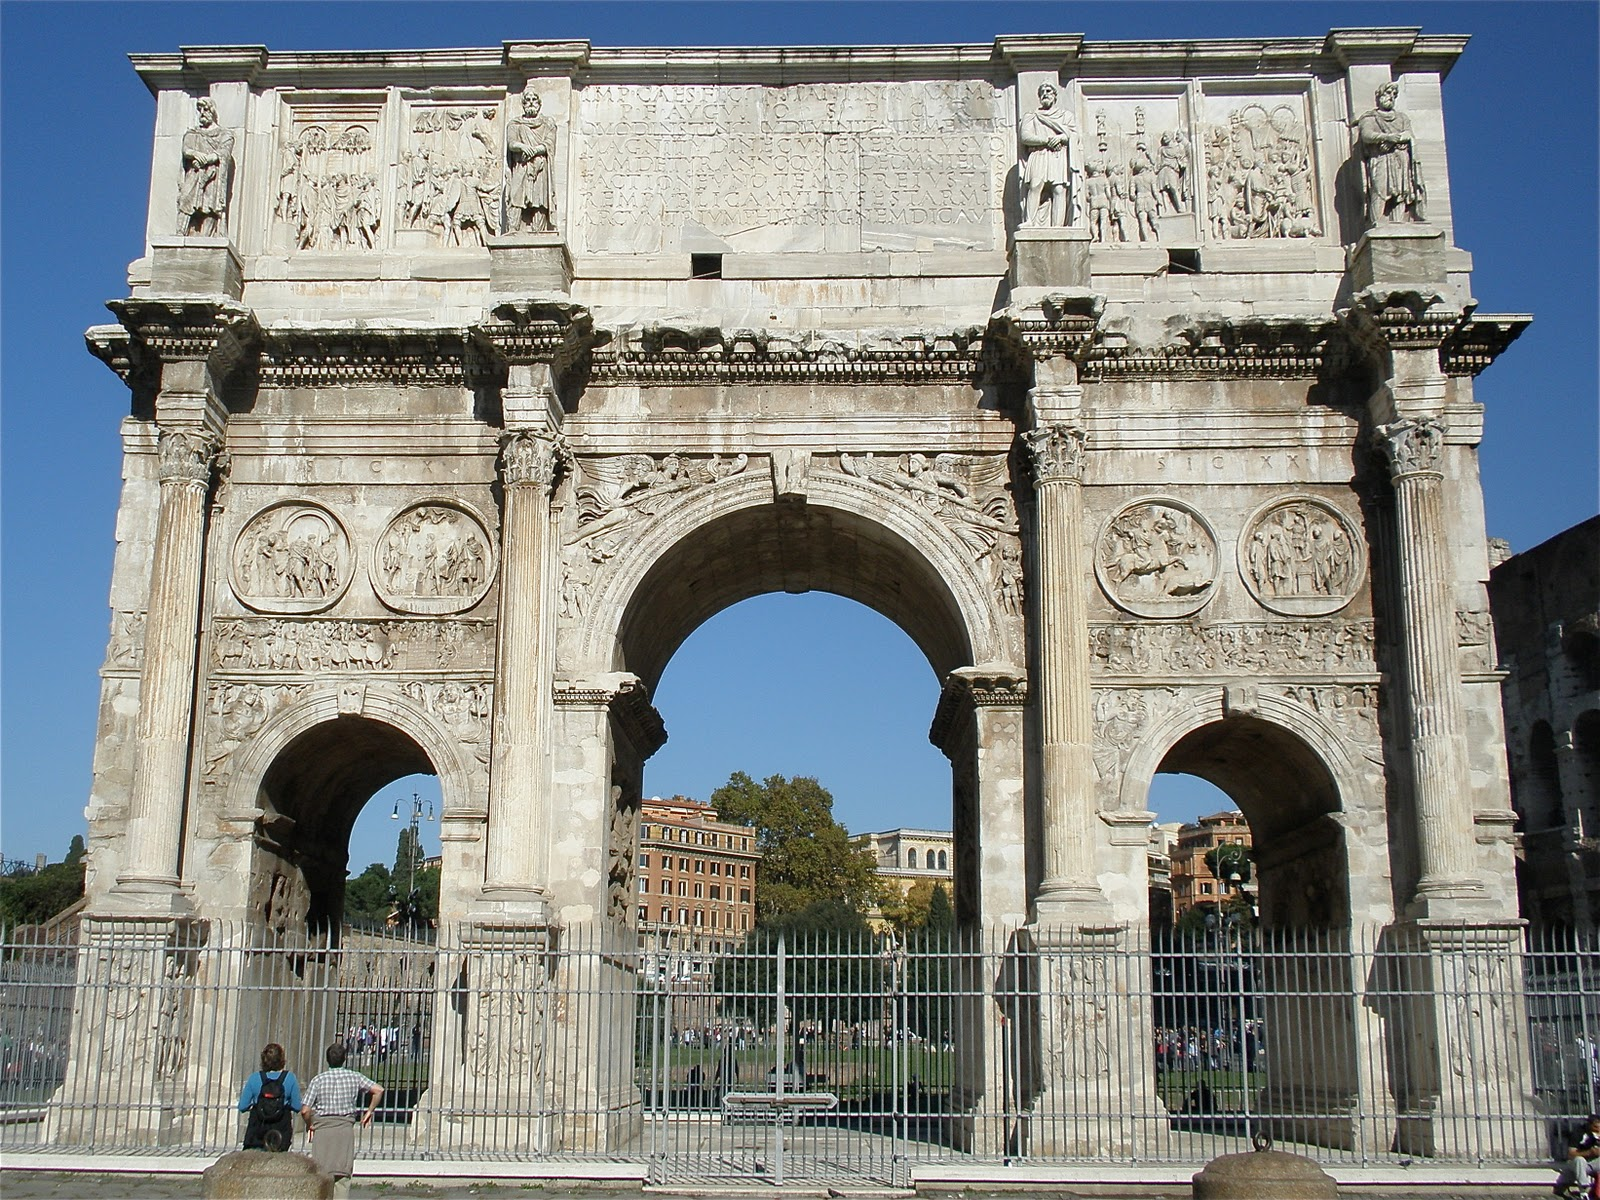 The Arch of Constantine (Arco di Costantino) is a triumphal arch in Rome dedicated to the emperor Constantine the Great. The arch was commissioned by the Roman Senate to commemorate Constantine's victory over Maxentius at the Battle of Milvian Bridge in AD 312.